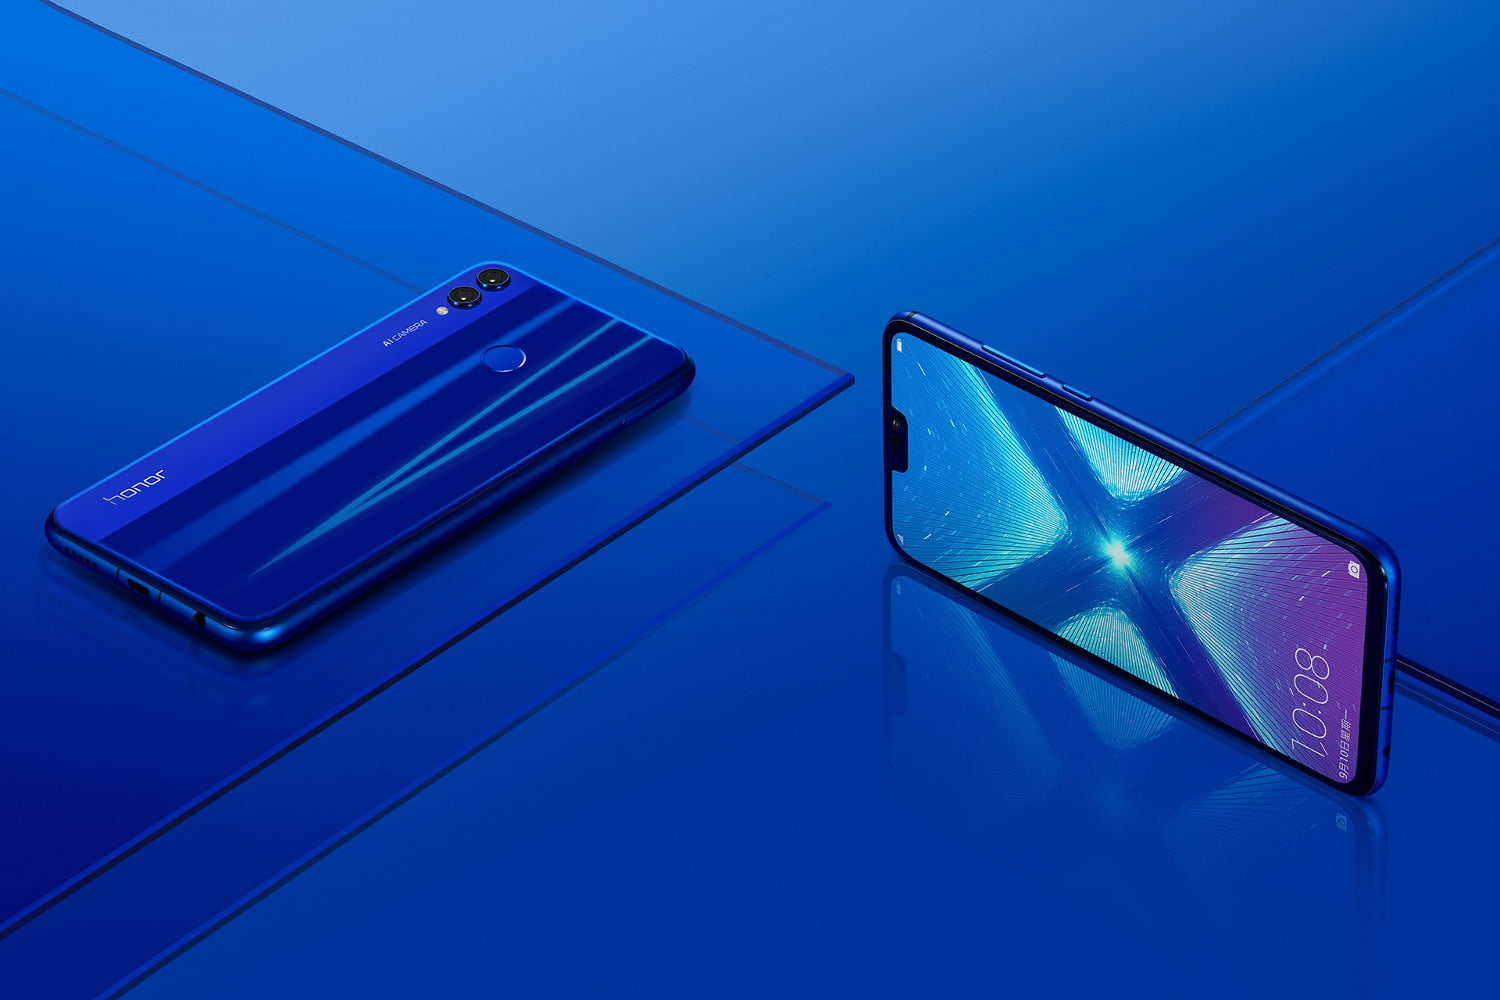 Honor 8X: News, Specs, Features, Price, Availability